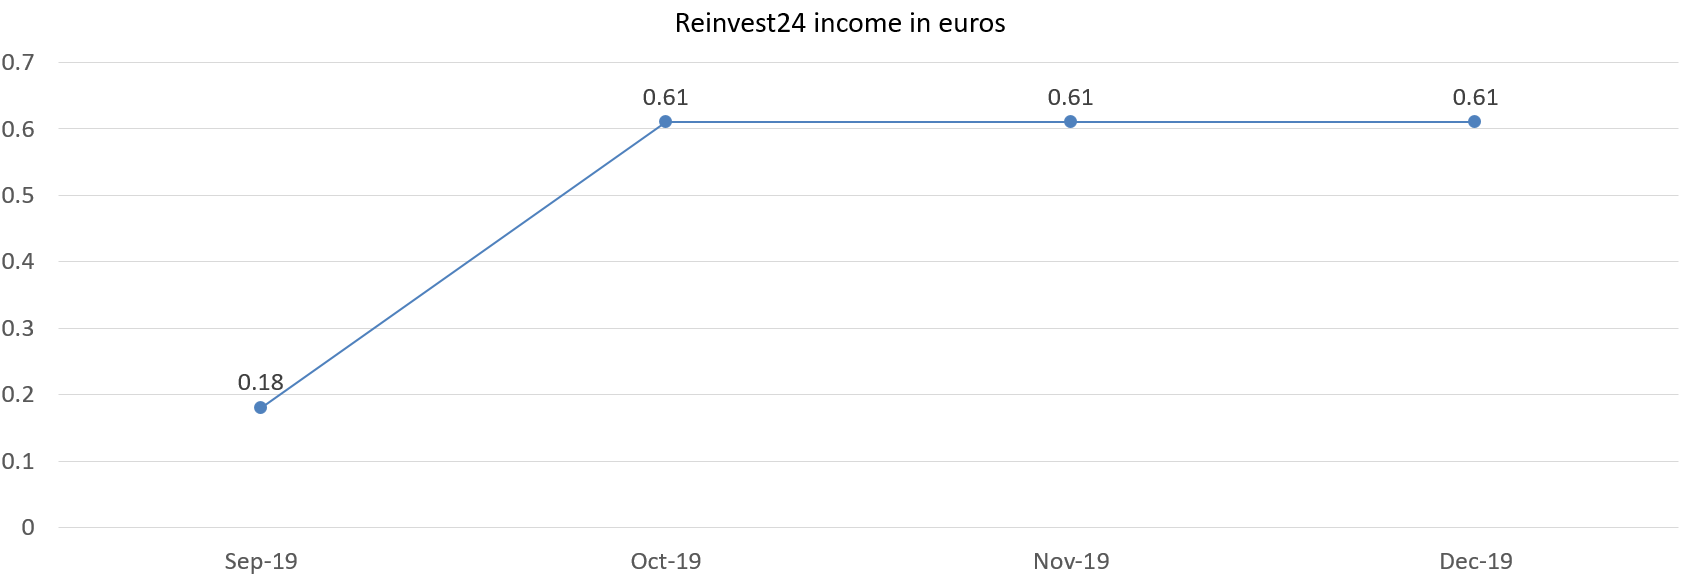 Reinvest24 income in euros december 2019